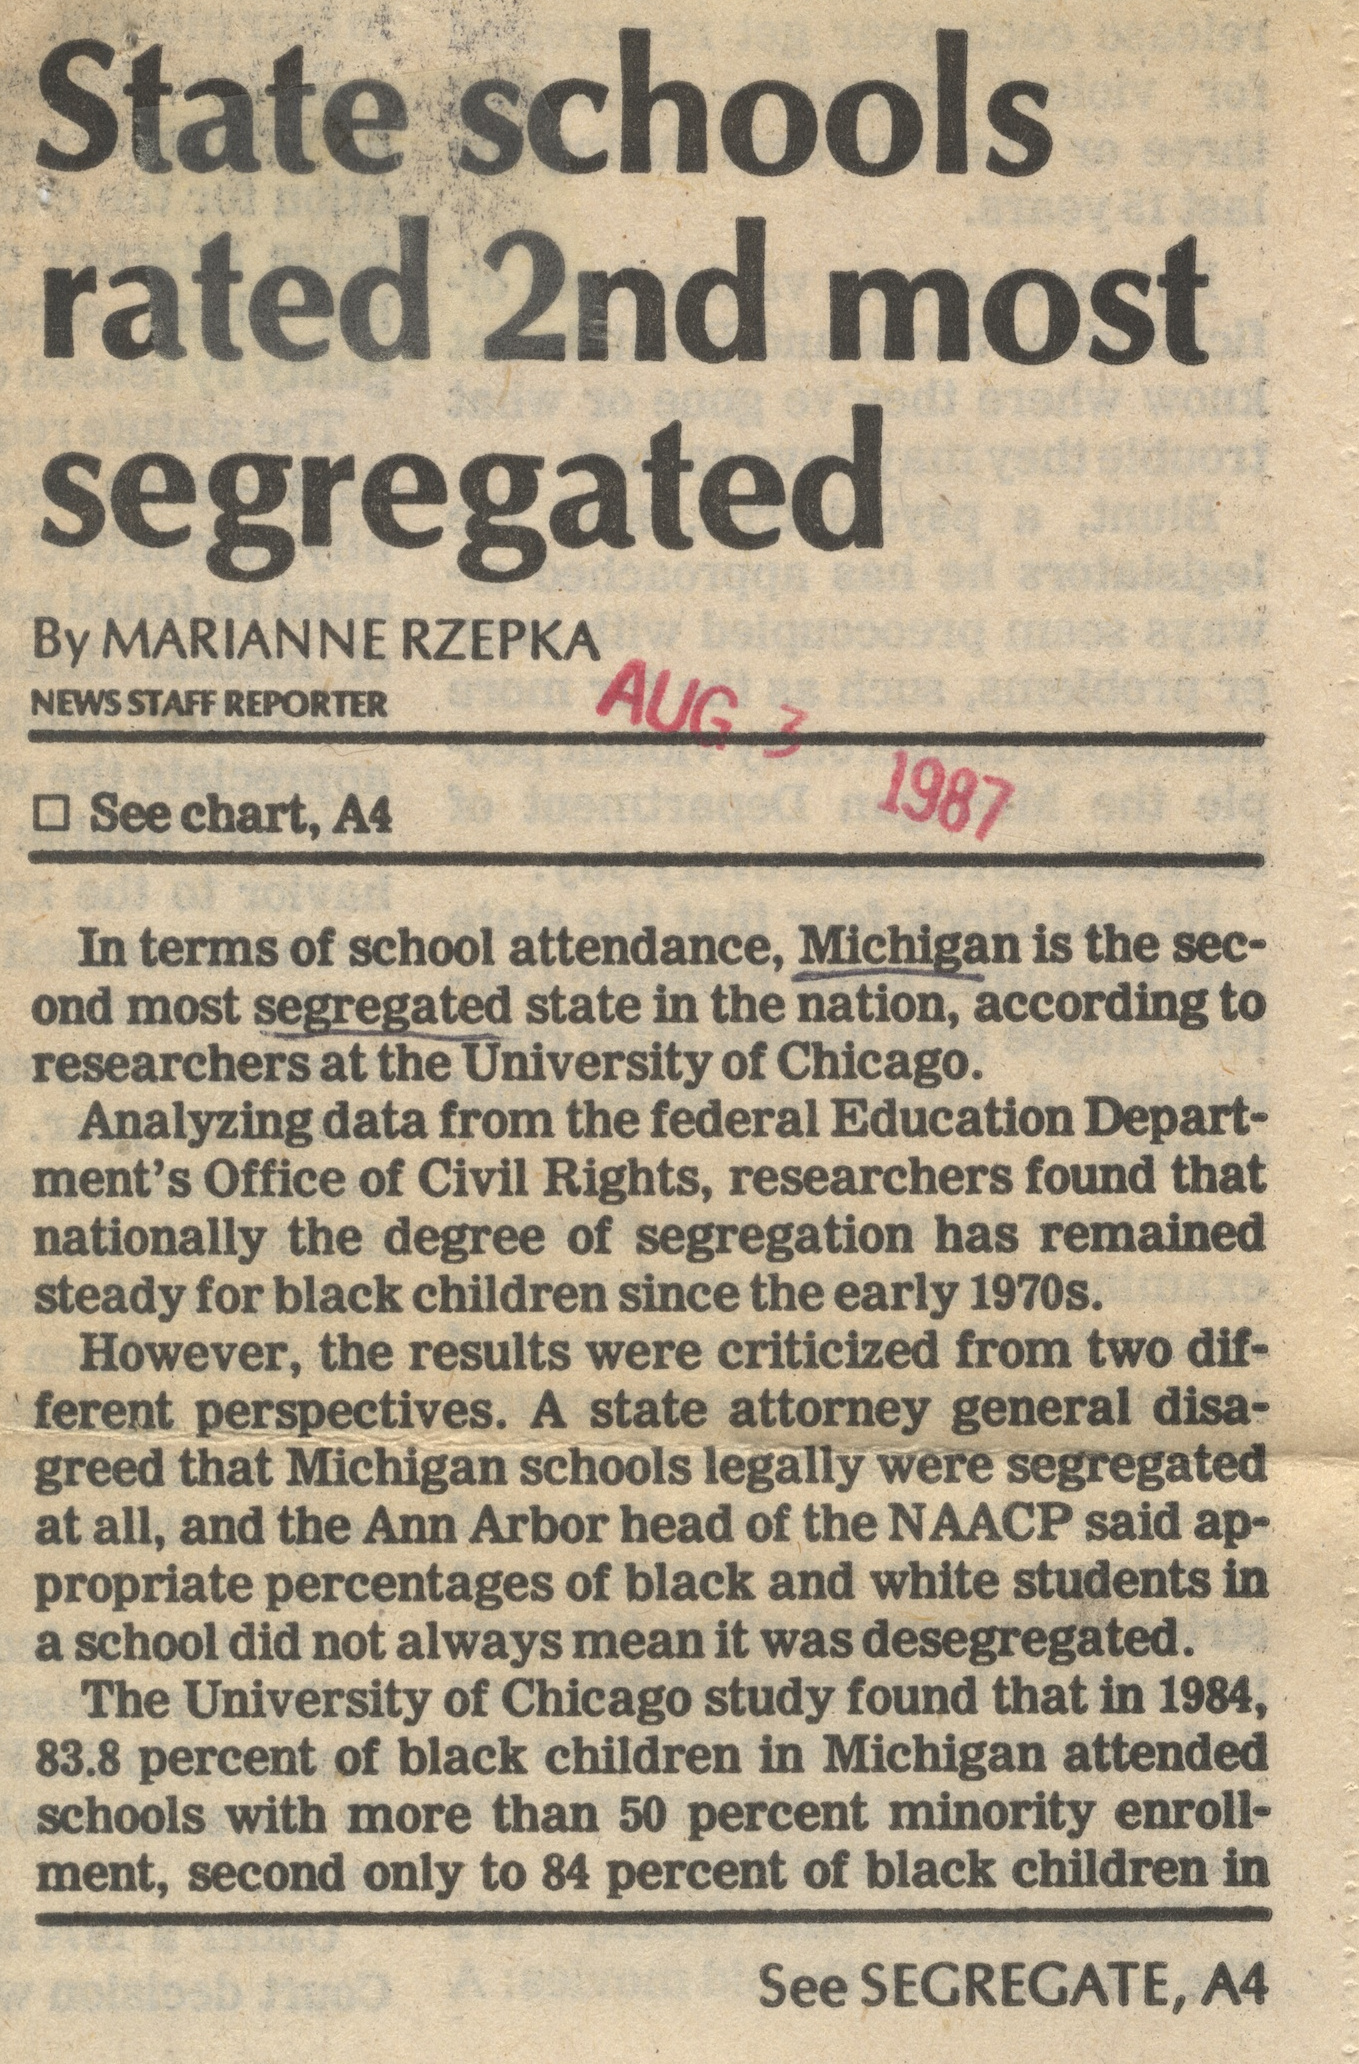 State Schools Rated 2nd Most Segregated image